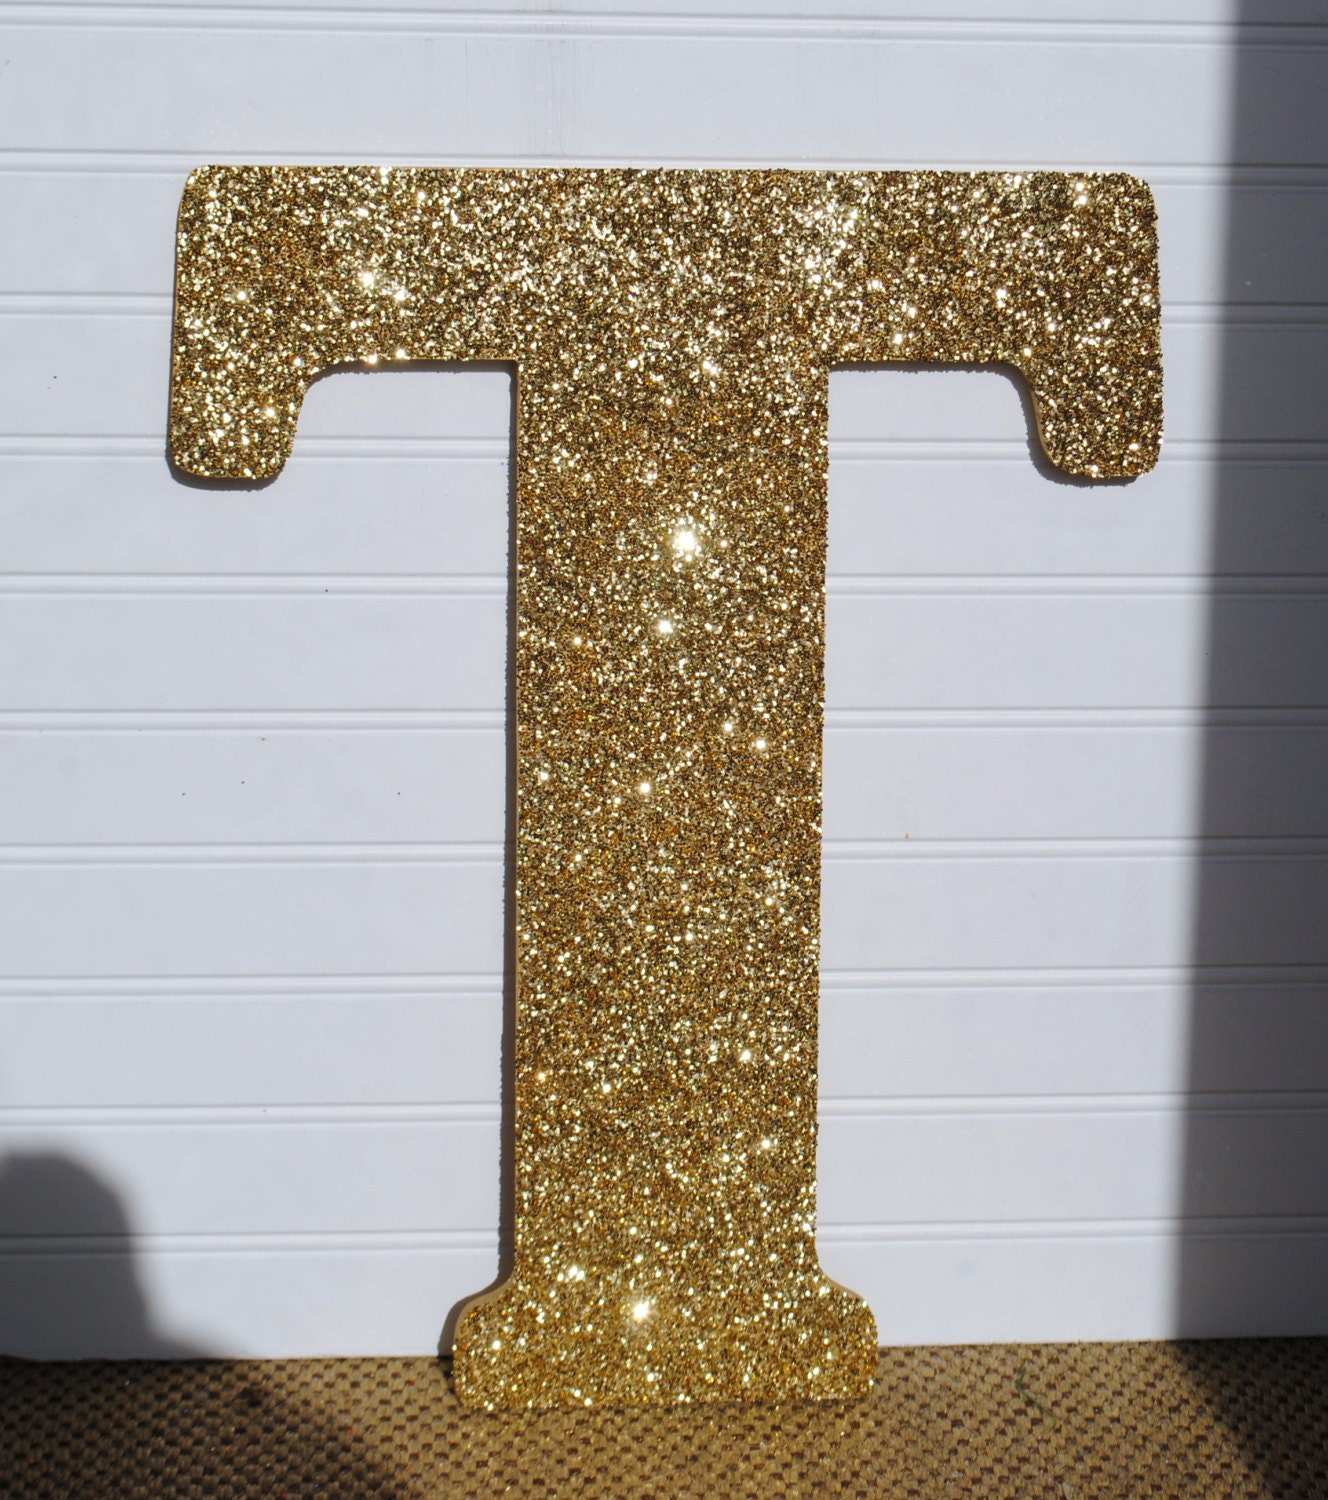 Decorative Wall Letters : Decorative gold glitter wall letters girls bedroom